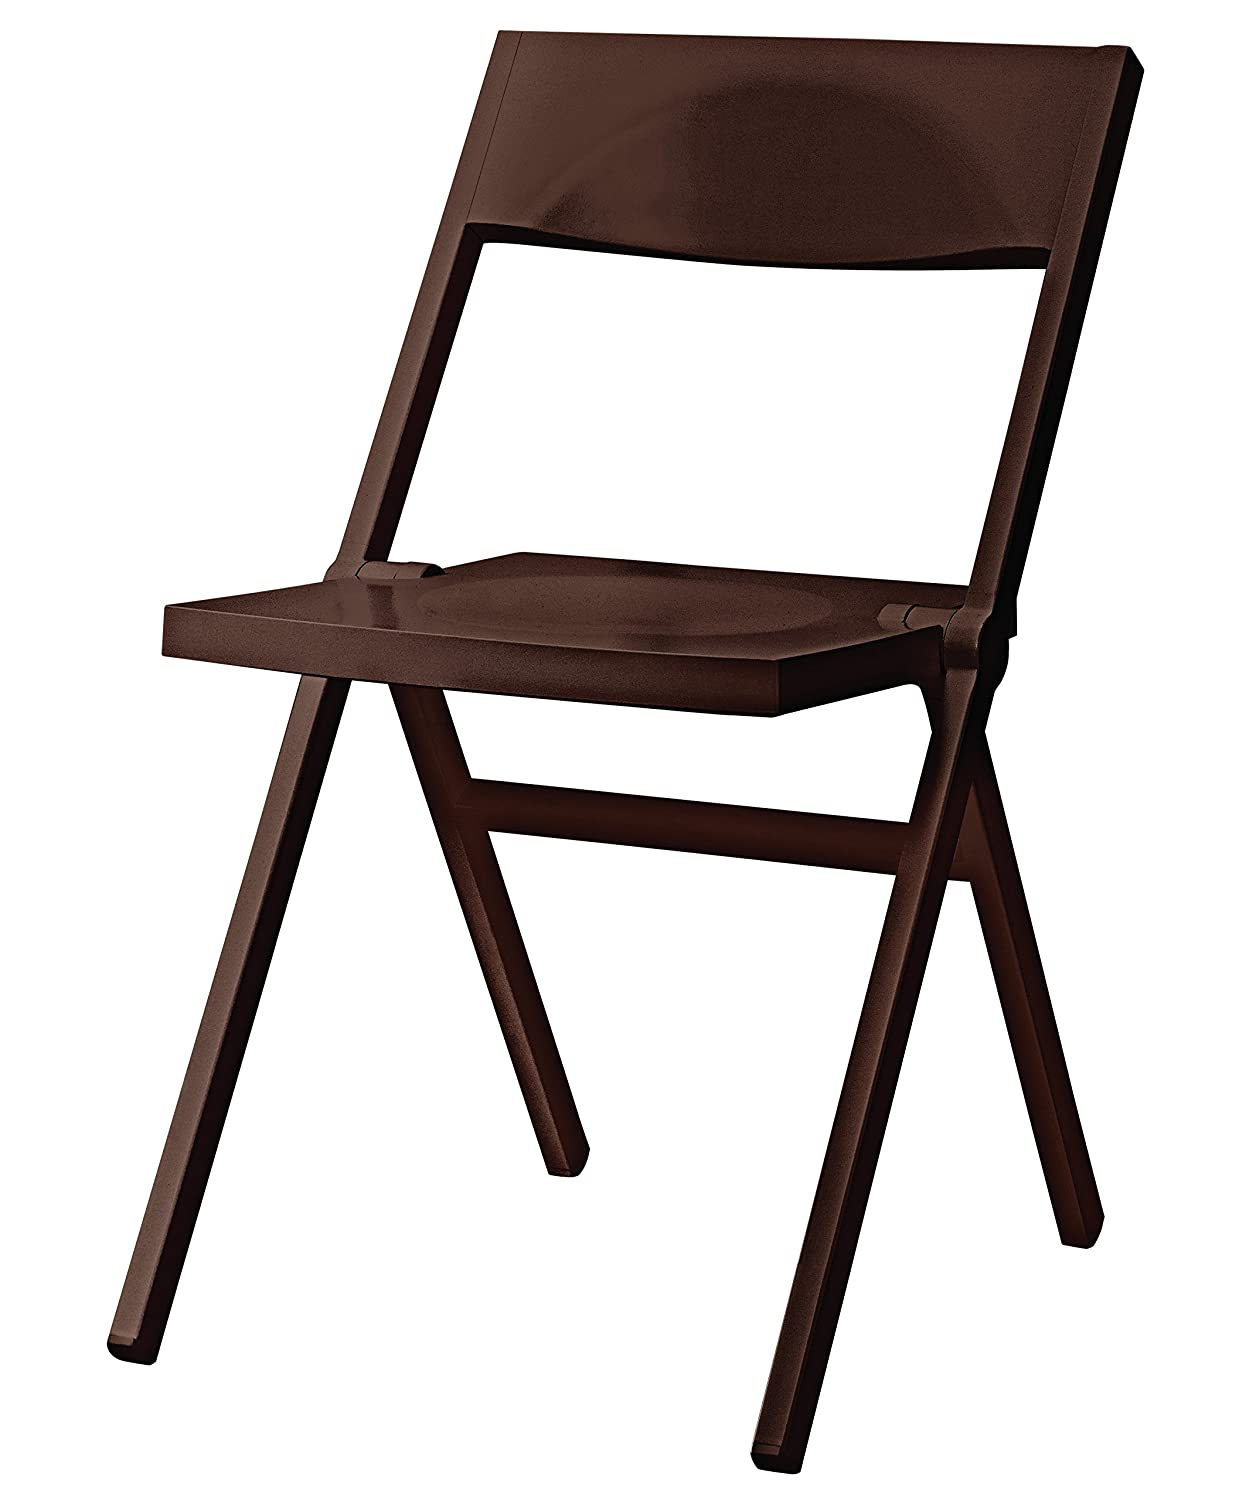 Alessi Folding and Stackable Chair in PP and Fiberglass, Black, 52 x 46 x 90 cm ASPN9017